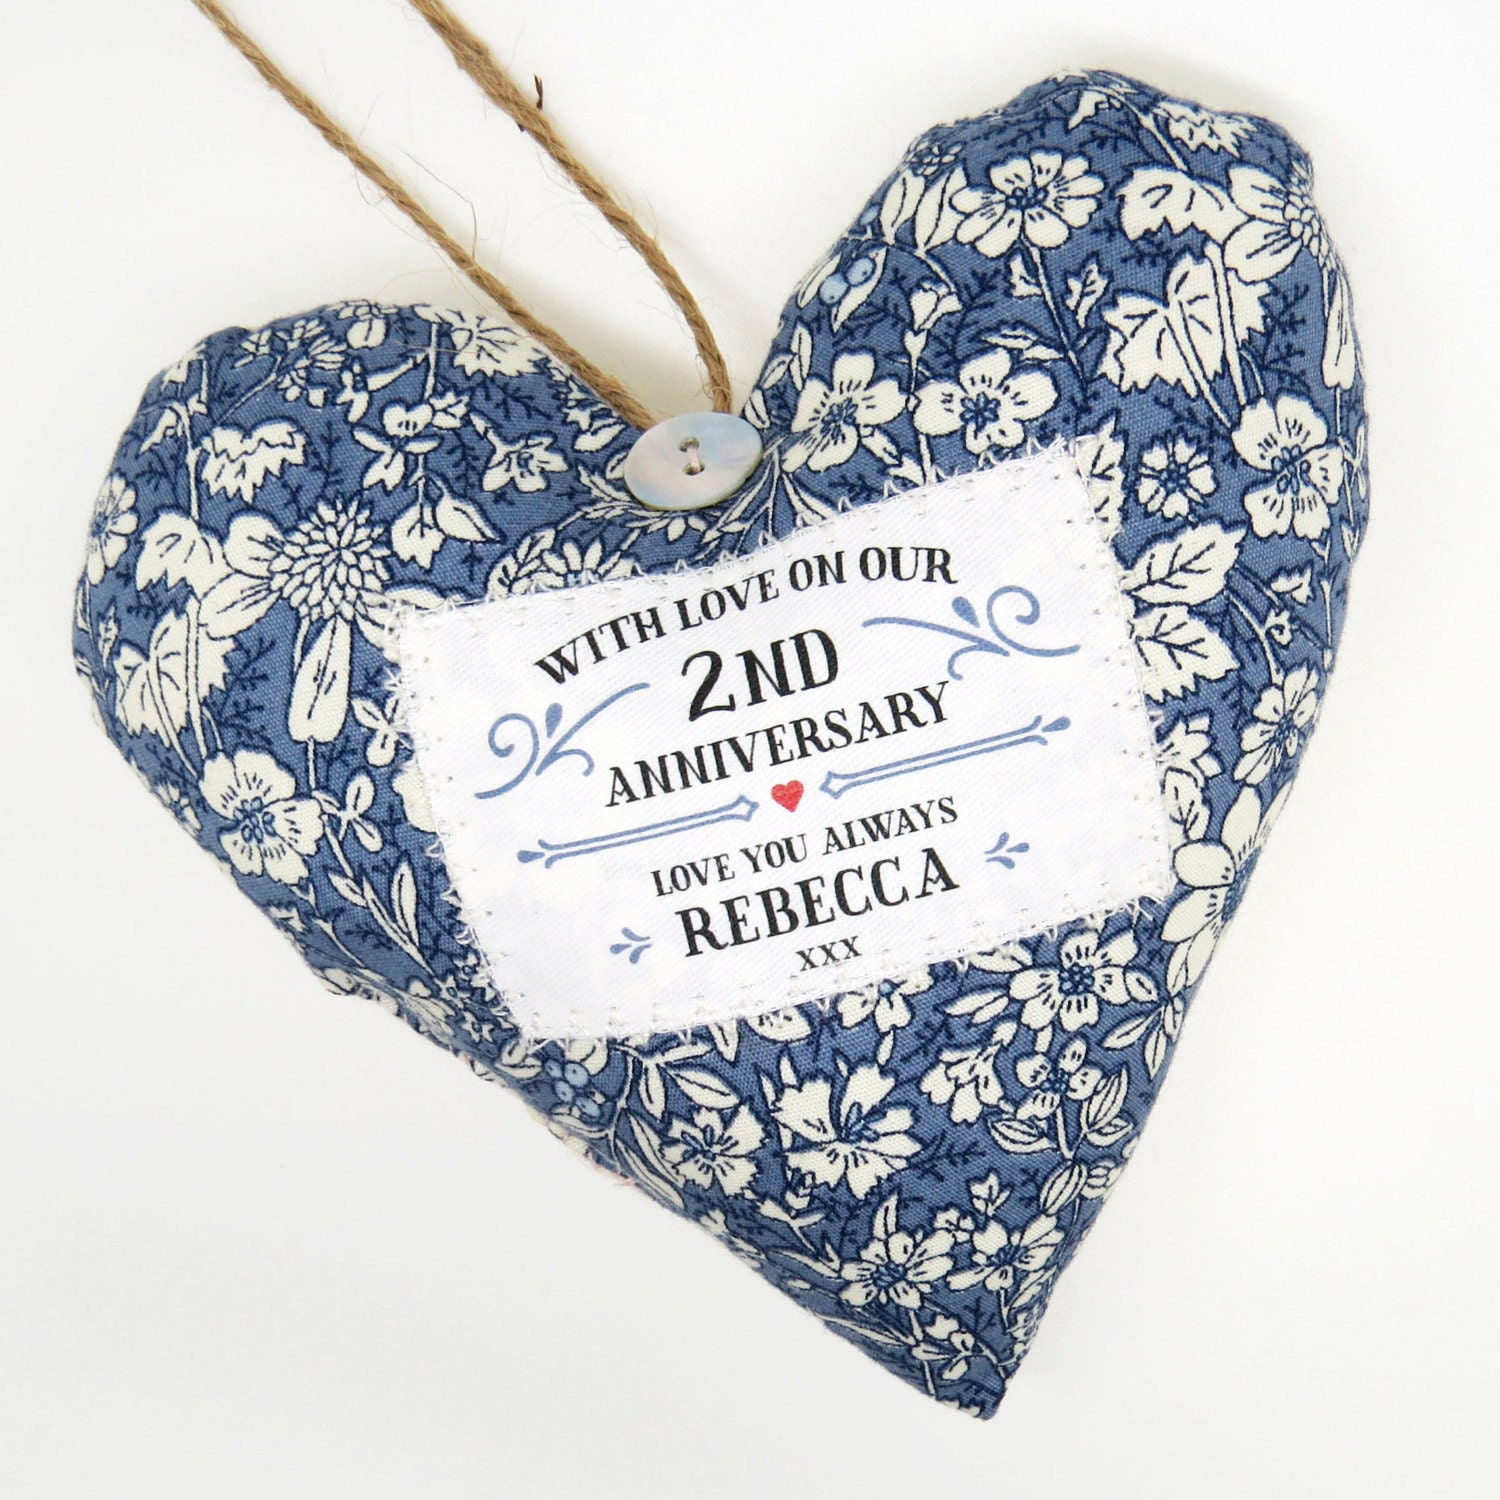 Cotton Wedding Anniversary Gifts: Personalised 2nd Second Wedding Anniversary Gift. Cotton